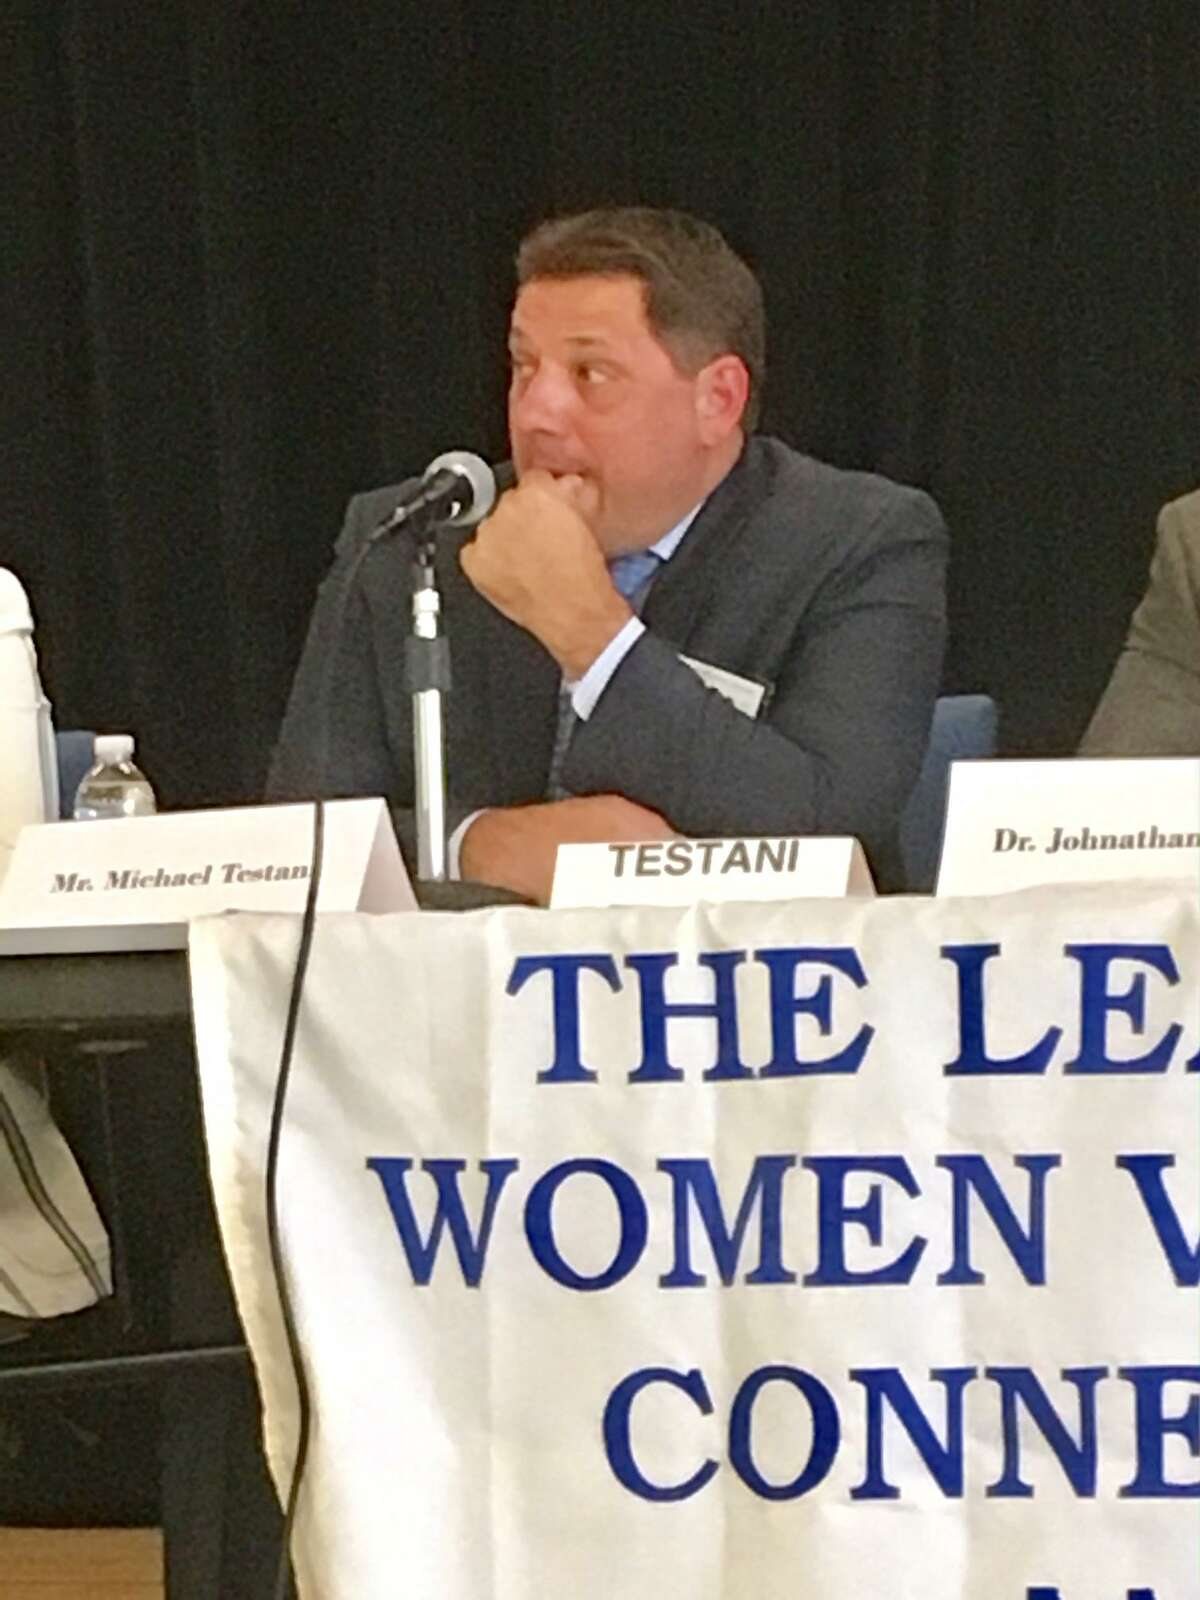 Michael Testani, a candidate for Interim Superintendent in Bridgeport answers a question at a League of Women Voters forum held at Claytor School. June 22, 2019